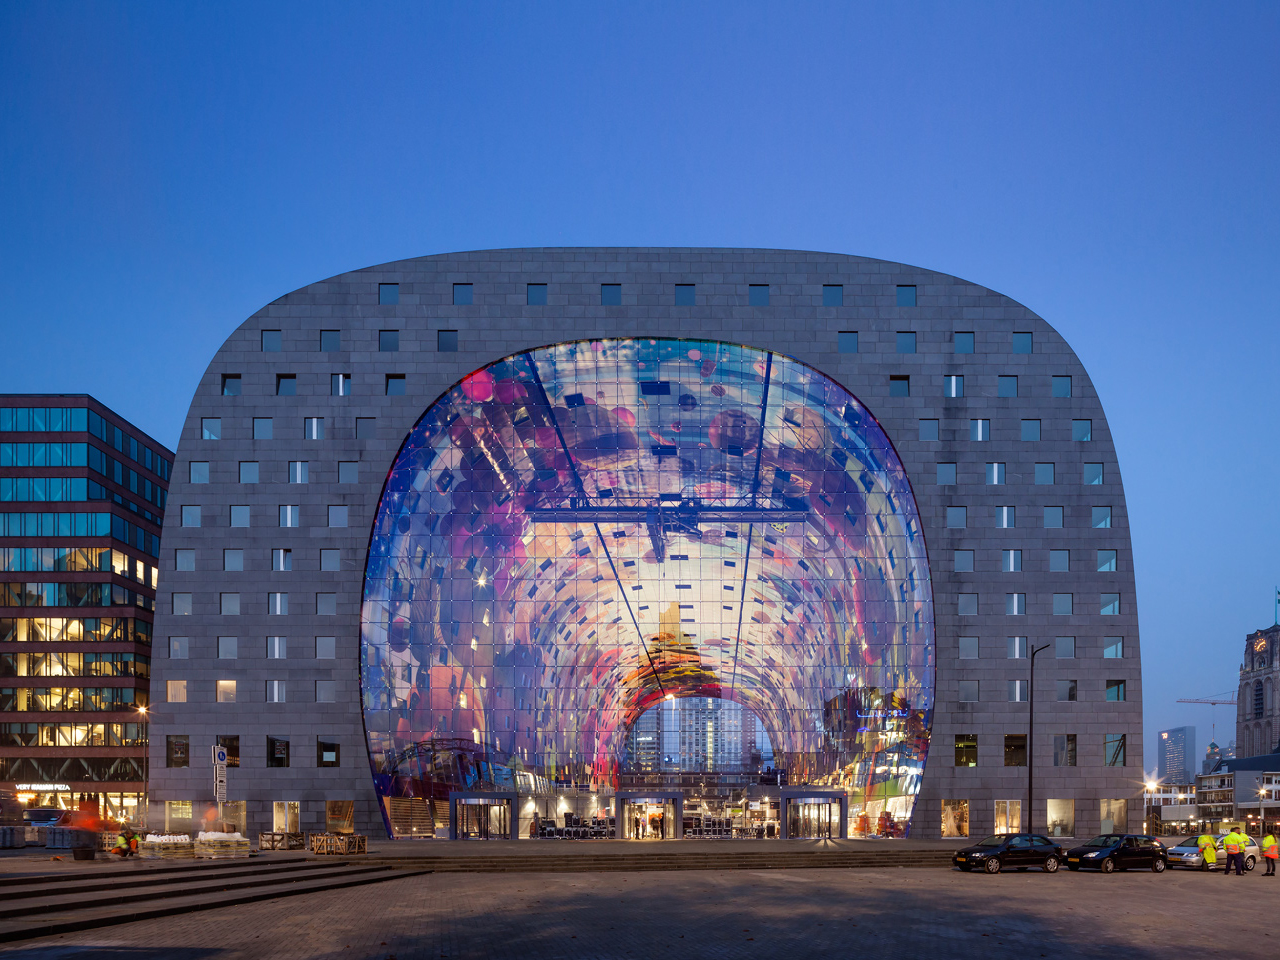 Win a private tour of the Markthal by Winy Maas